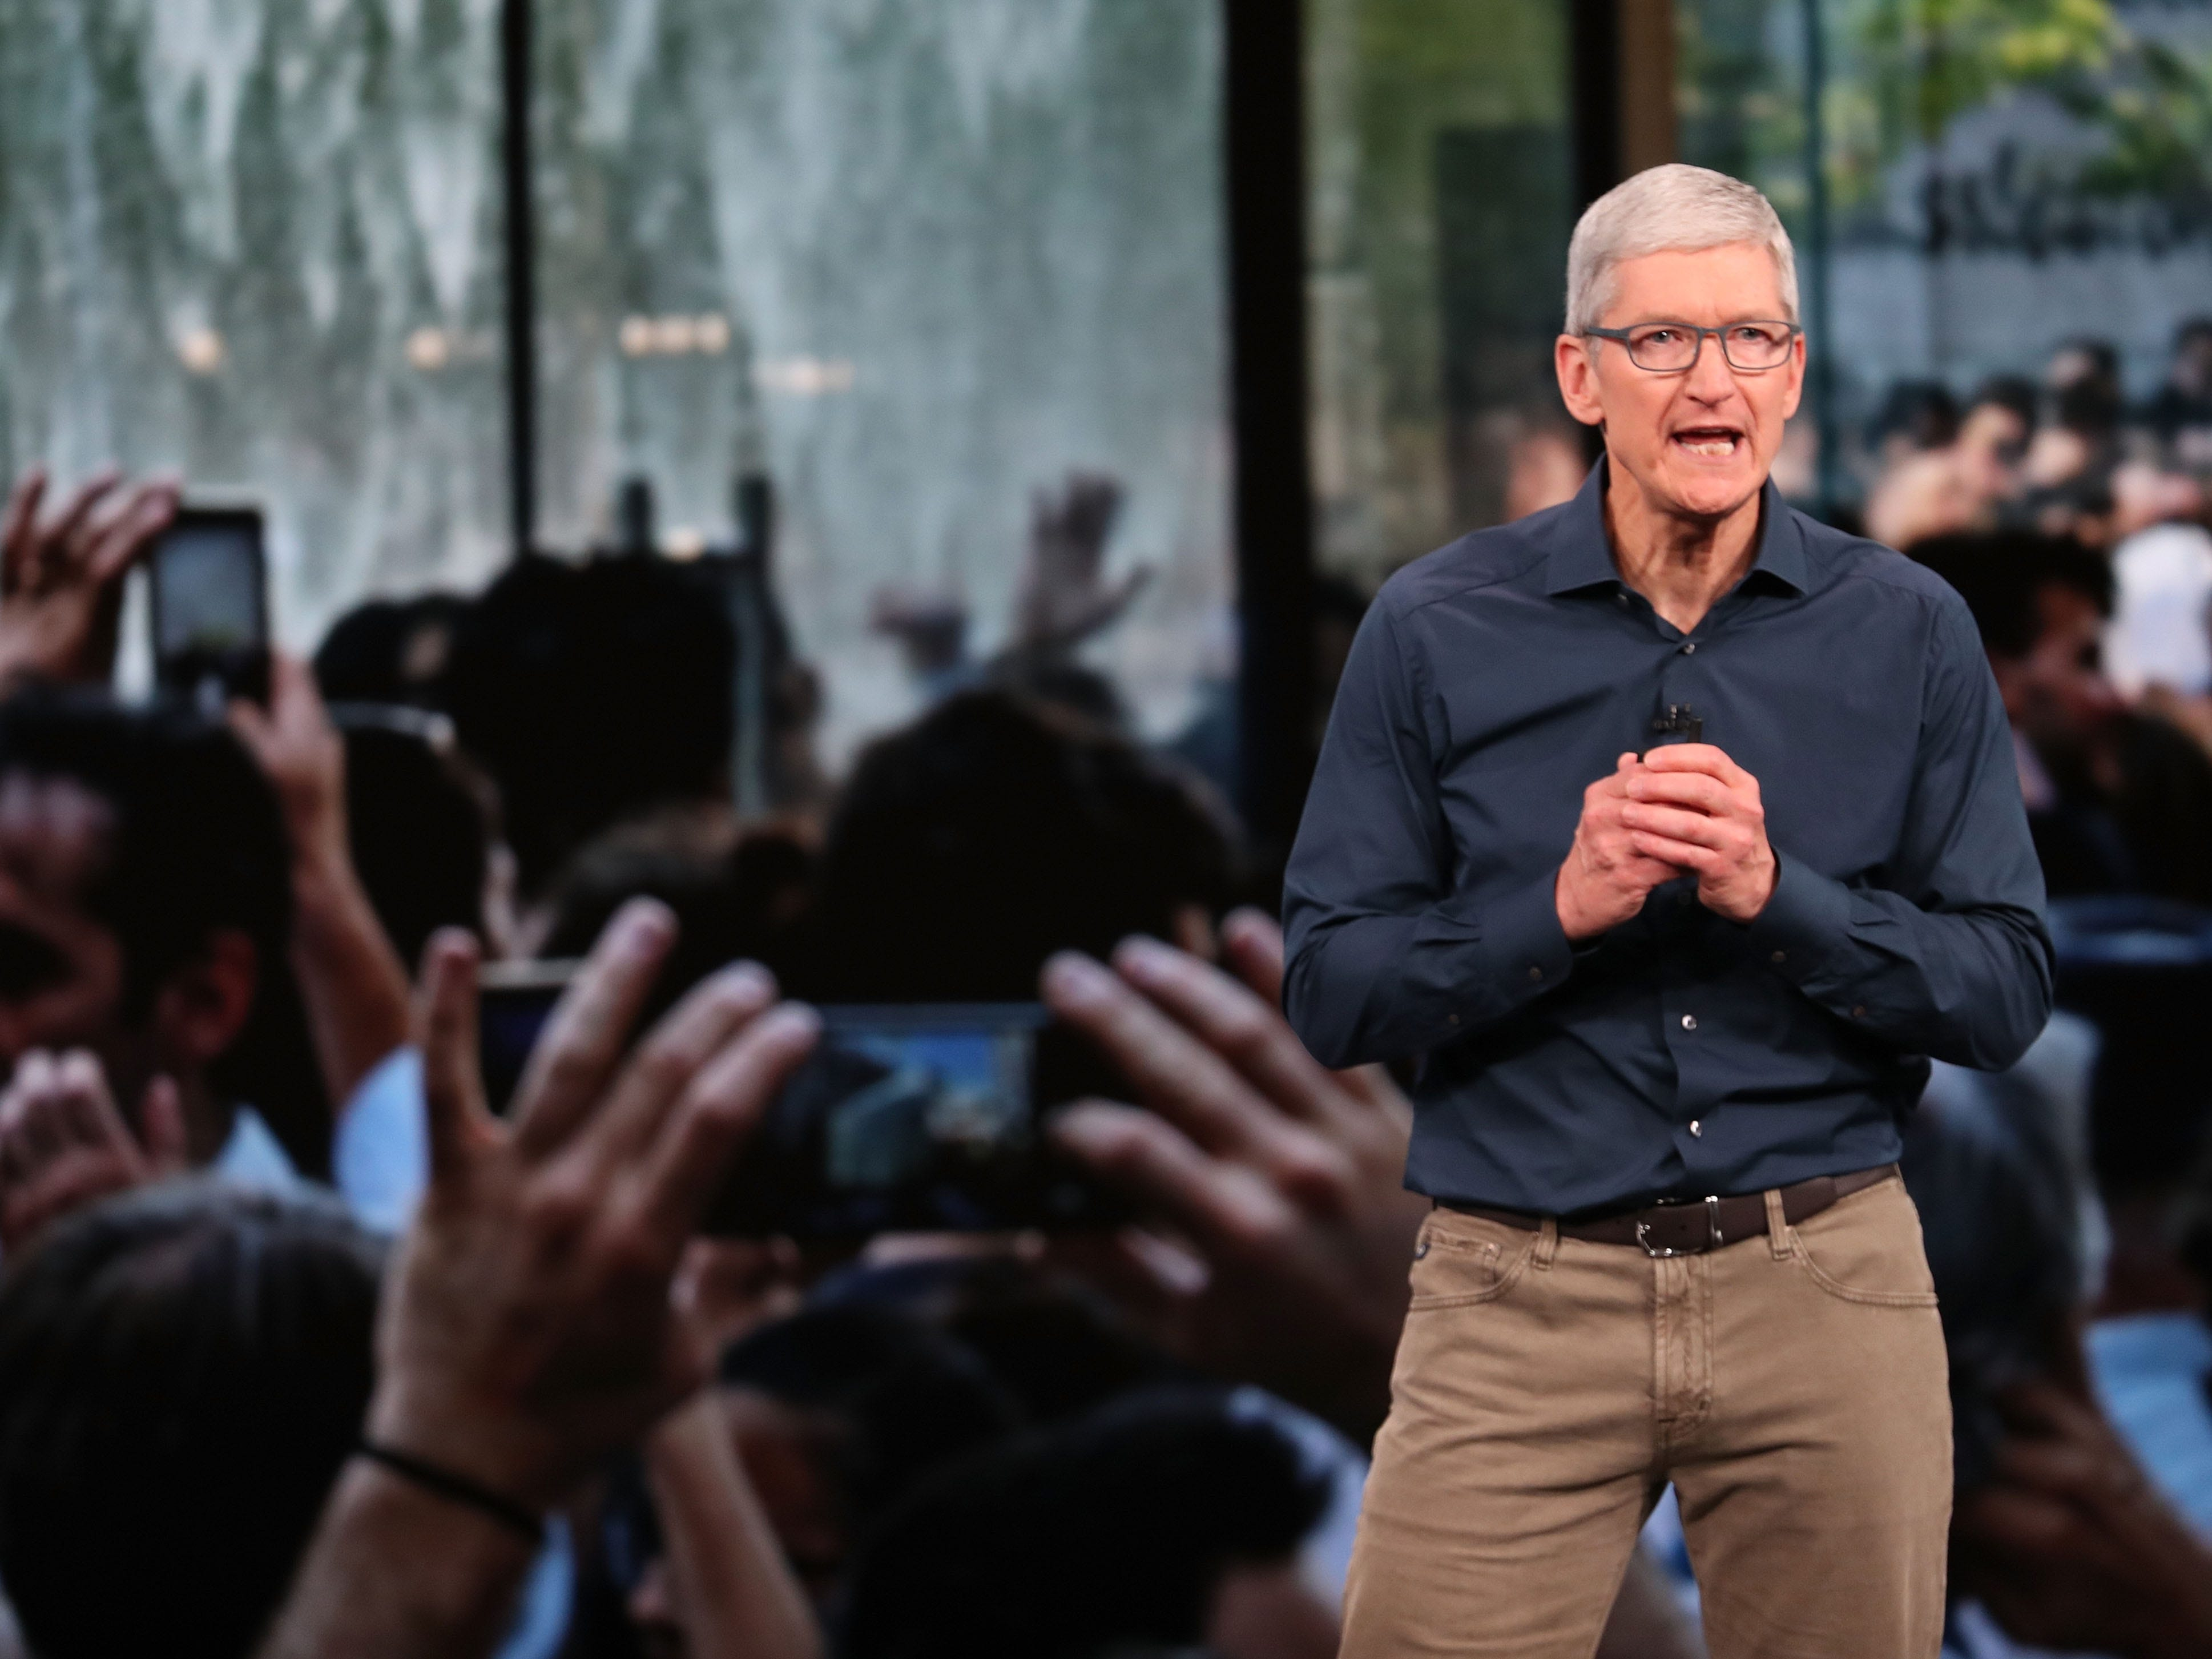 Tim Cook, chief executive officer of Apple,  speaks during an event at the Steve Jobs Theater at Apple Park on Sept. 12, 2018, in Cupertino, Calif.